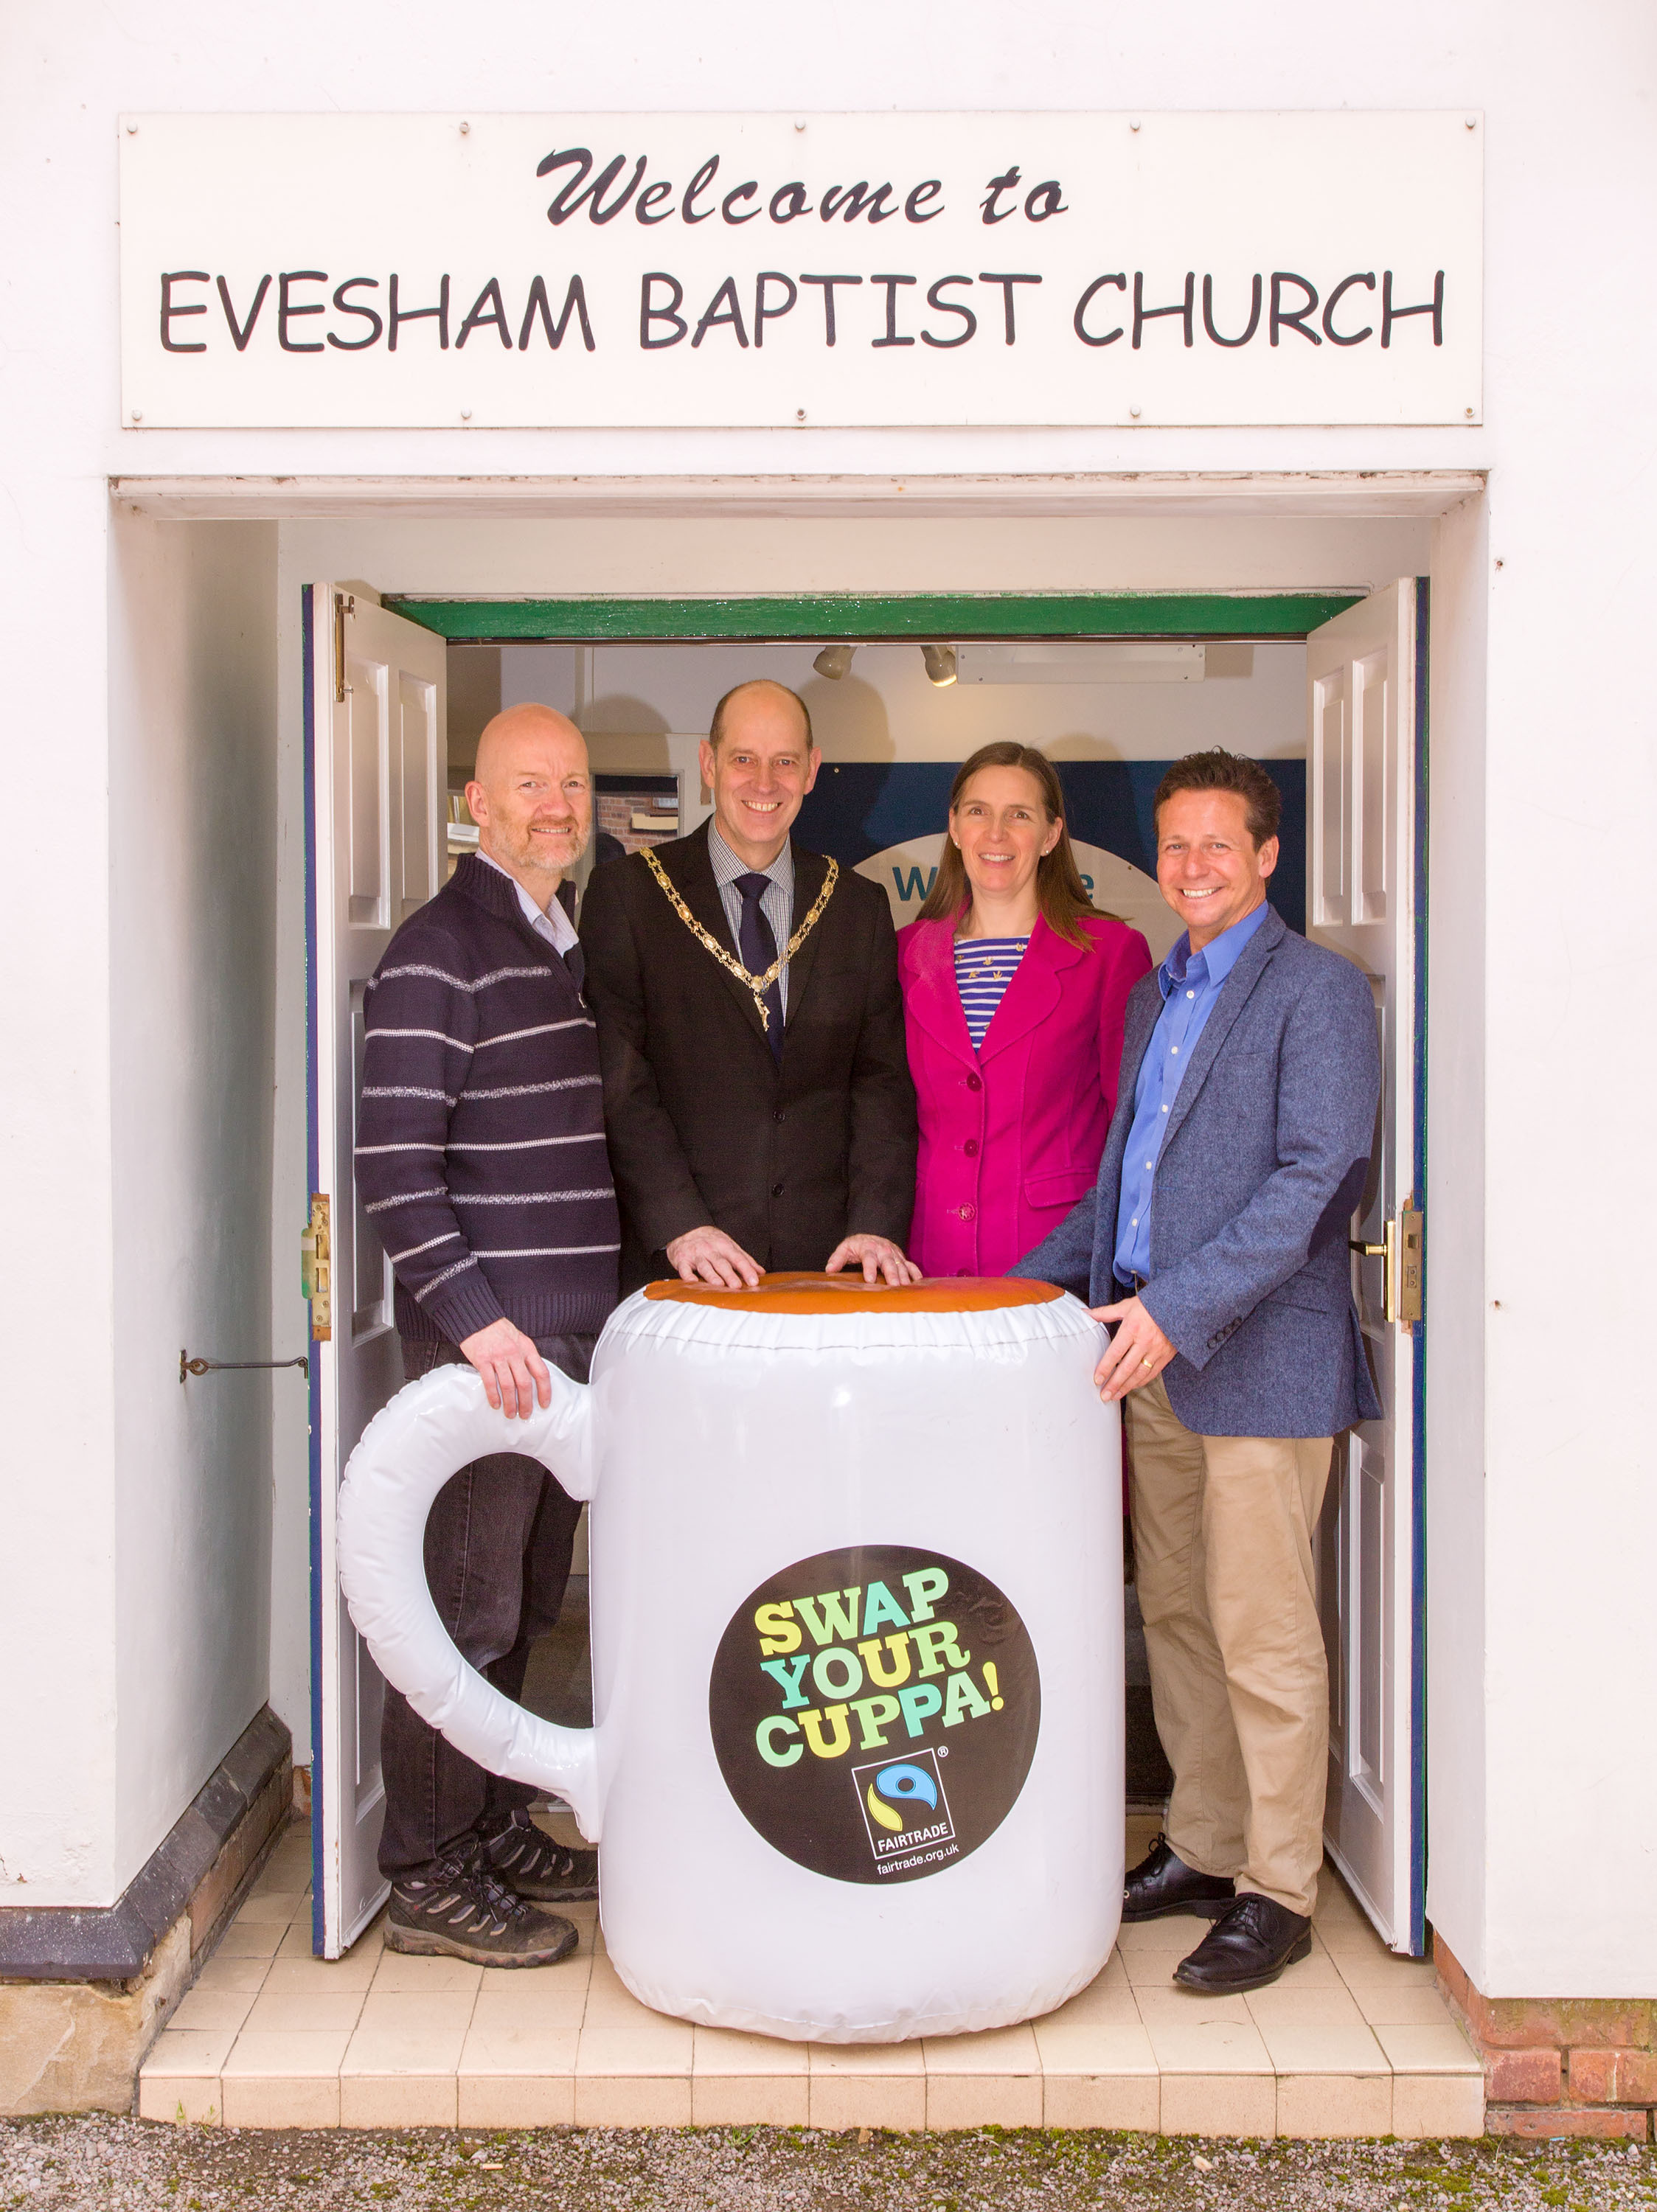 Rev. Dr. Edward Pillar, Councillor Richard Jones and Mrs Penny Jones, Mayor and Mayoress of Evesham, with Nigel Huddleston MP, at Evesham Baptist Church's Fairtrade Pancake Morning, 14th April 2018.Photo credit: Photograph by Simon Brown, Evesham Bapt